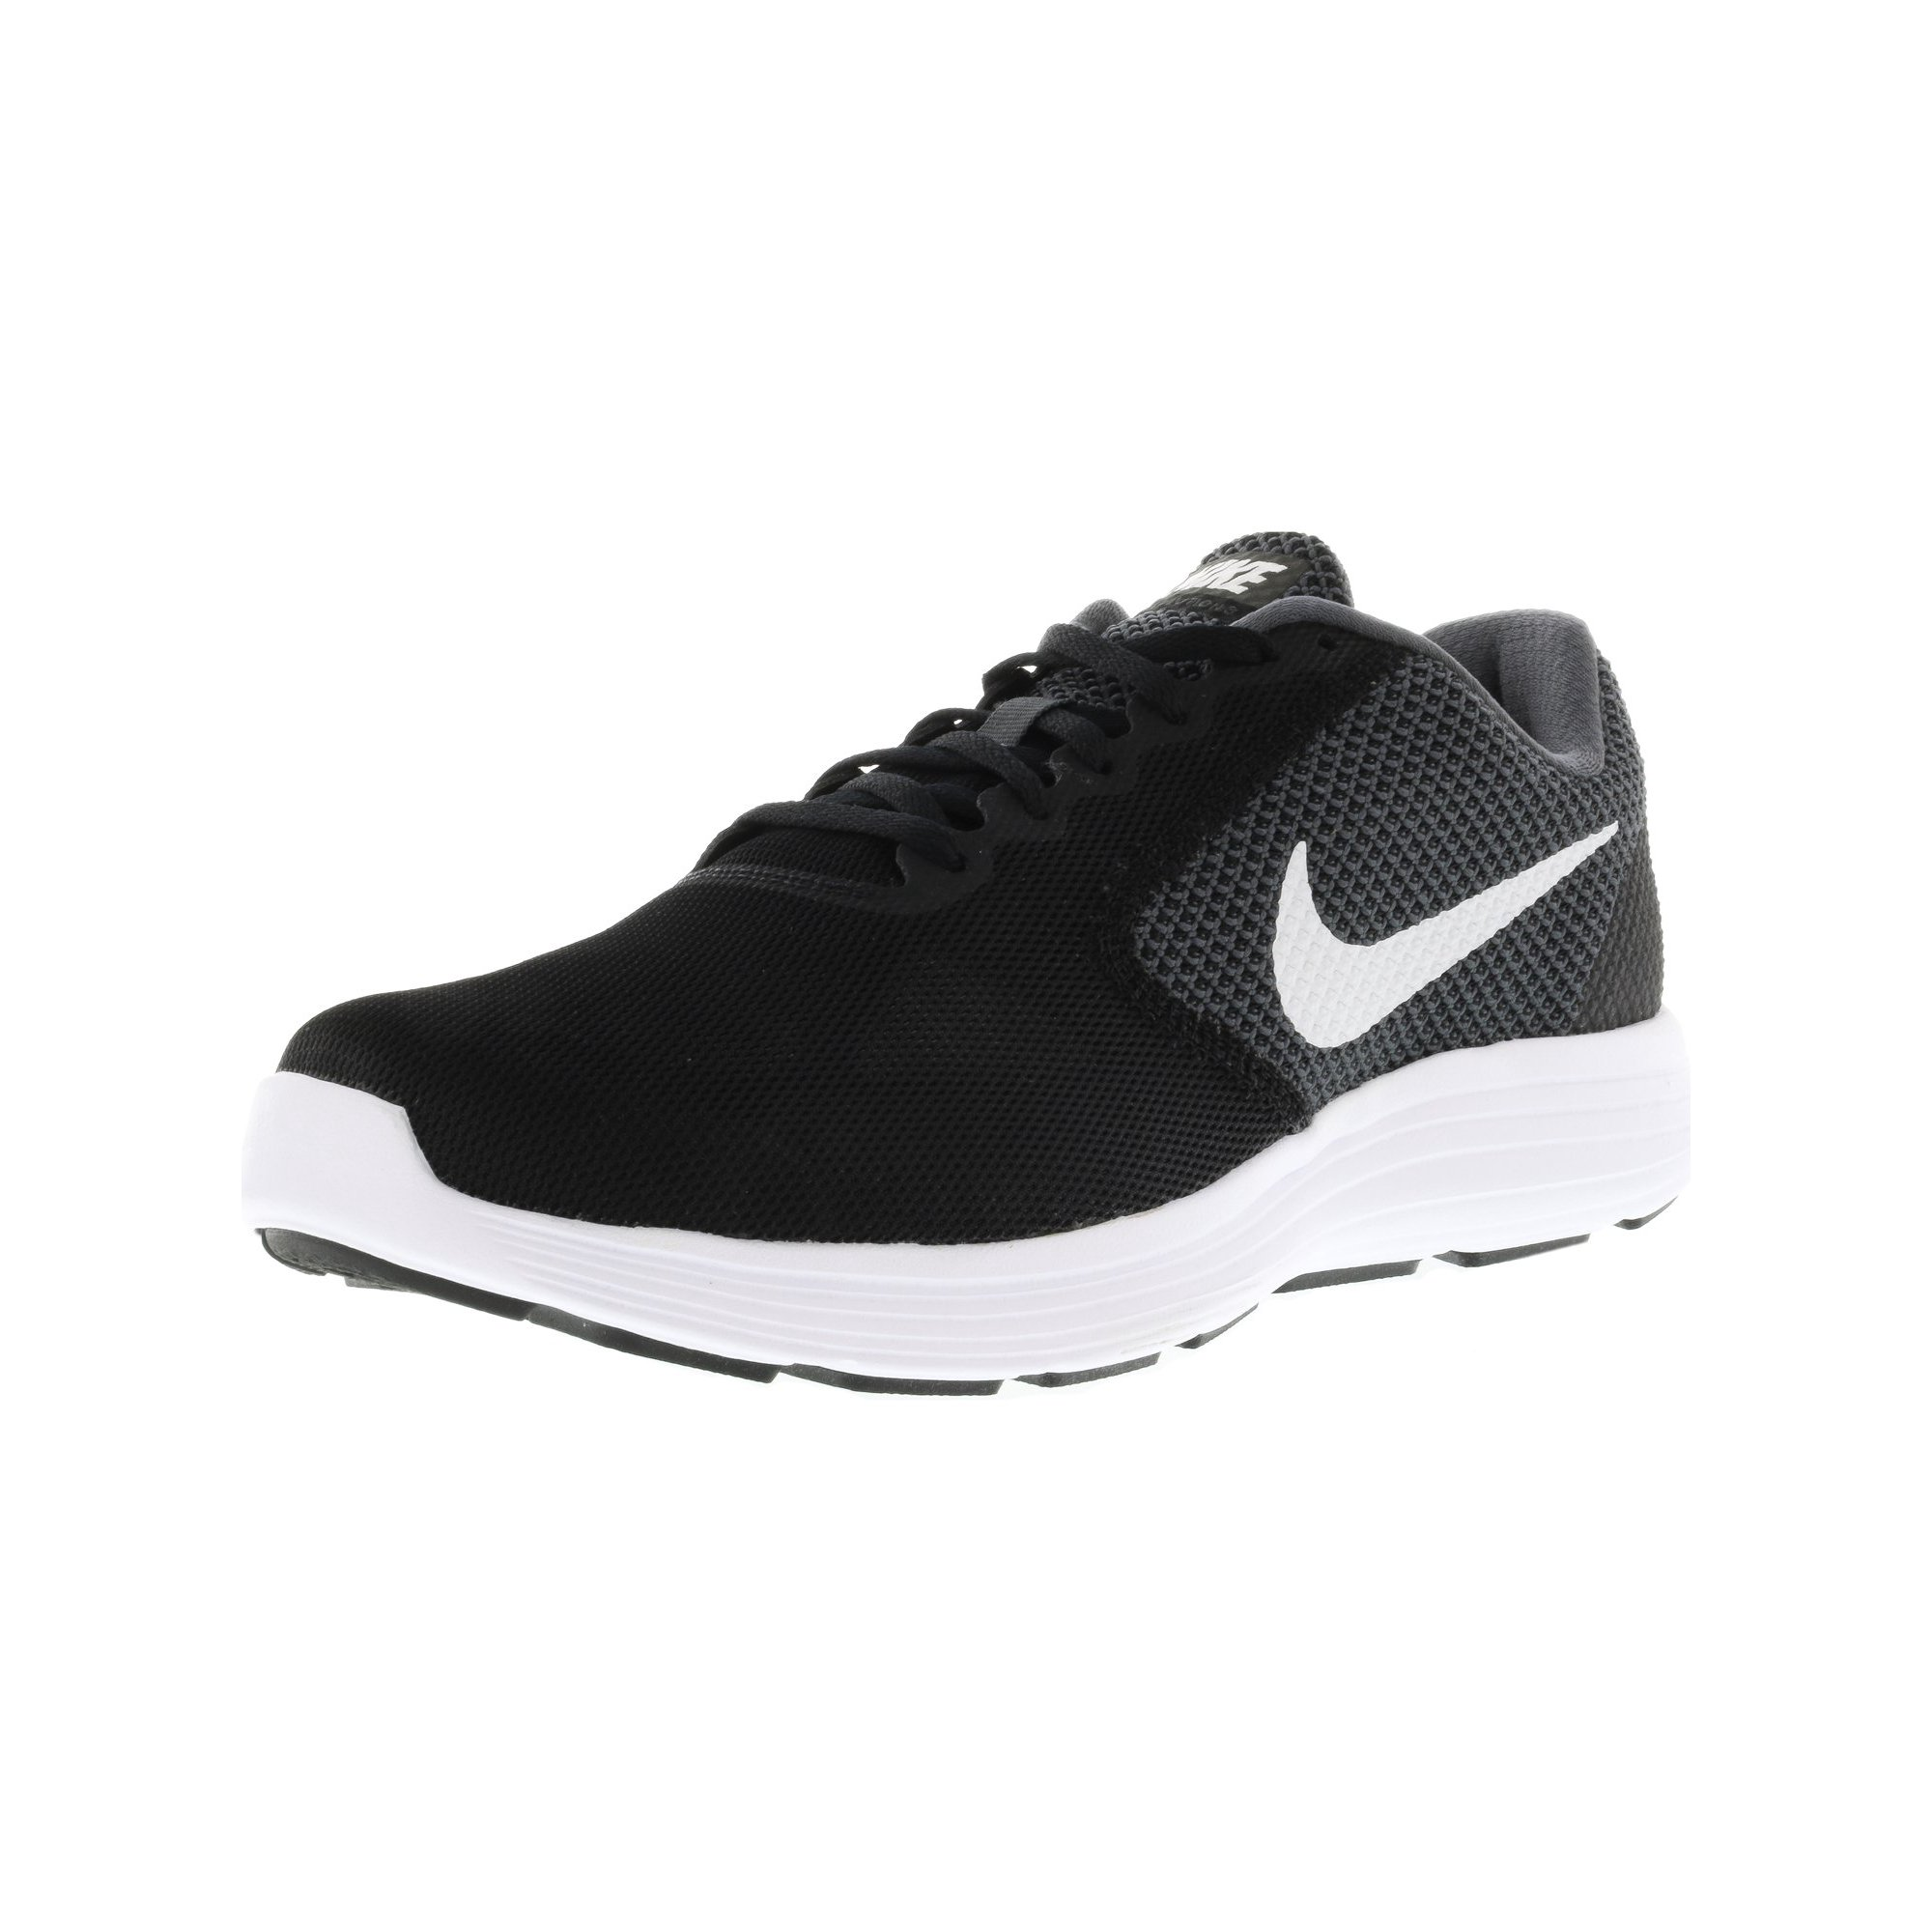 low priced c19b9 fd5cc Nike Men s Revolution 3 Dark Grey   White-Black Ankle-High Running Shoe -  9W   Walmart Canada